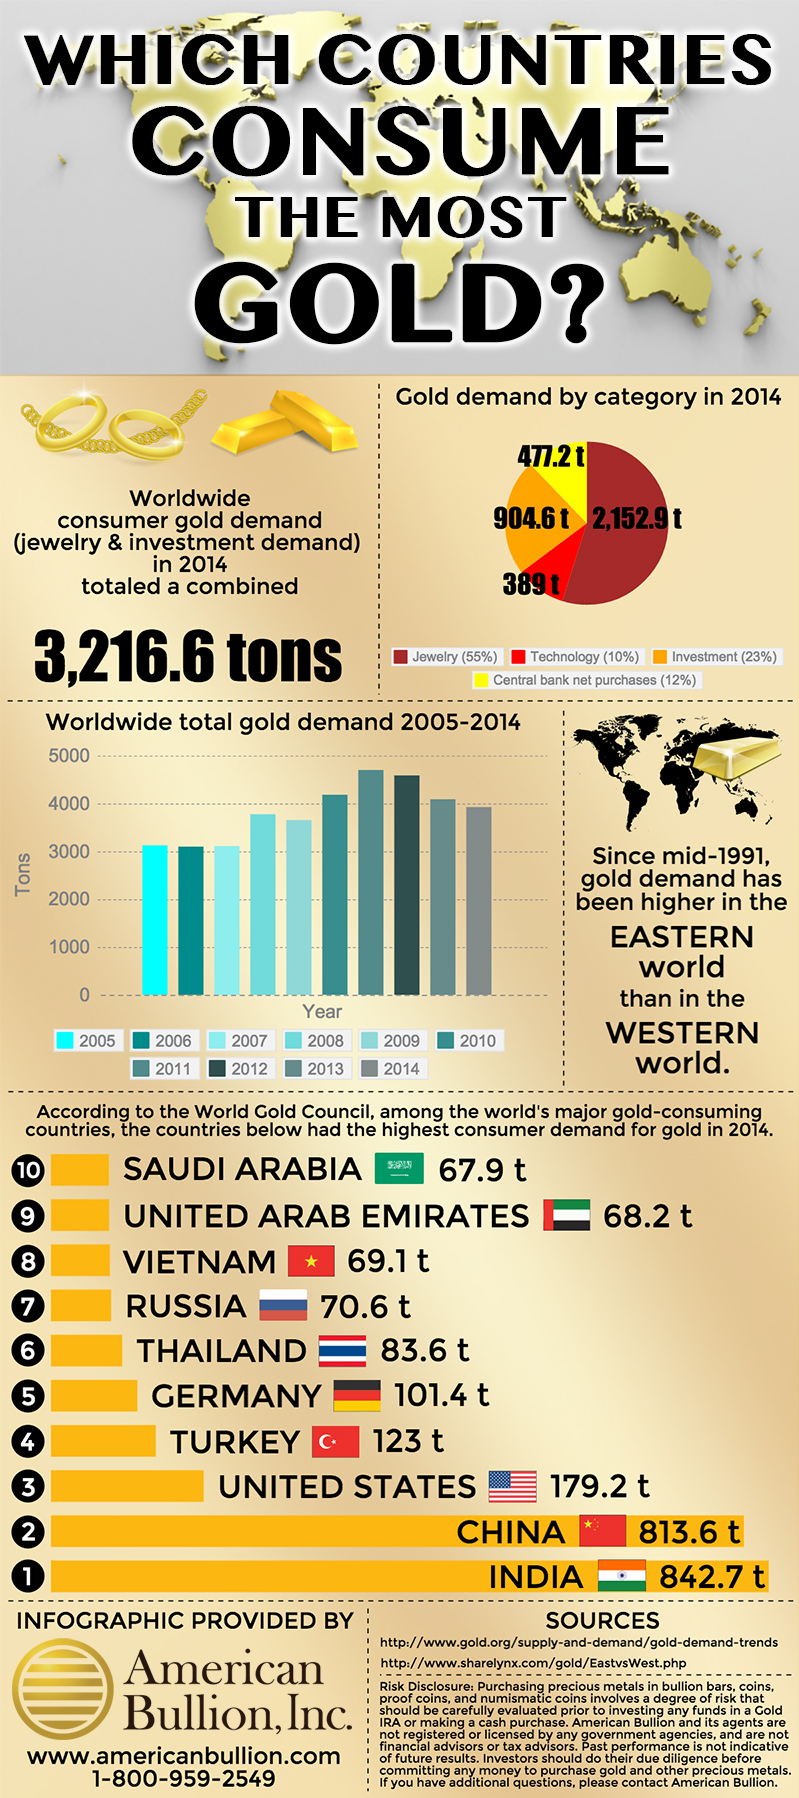 infographic, largest gold consuming country, gold consumption by country, gold consumption by country 2014